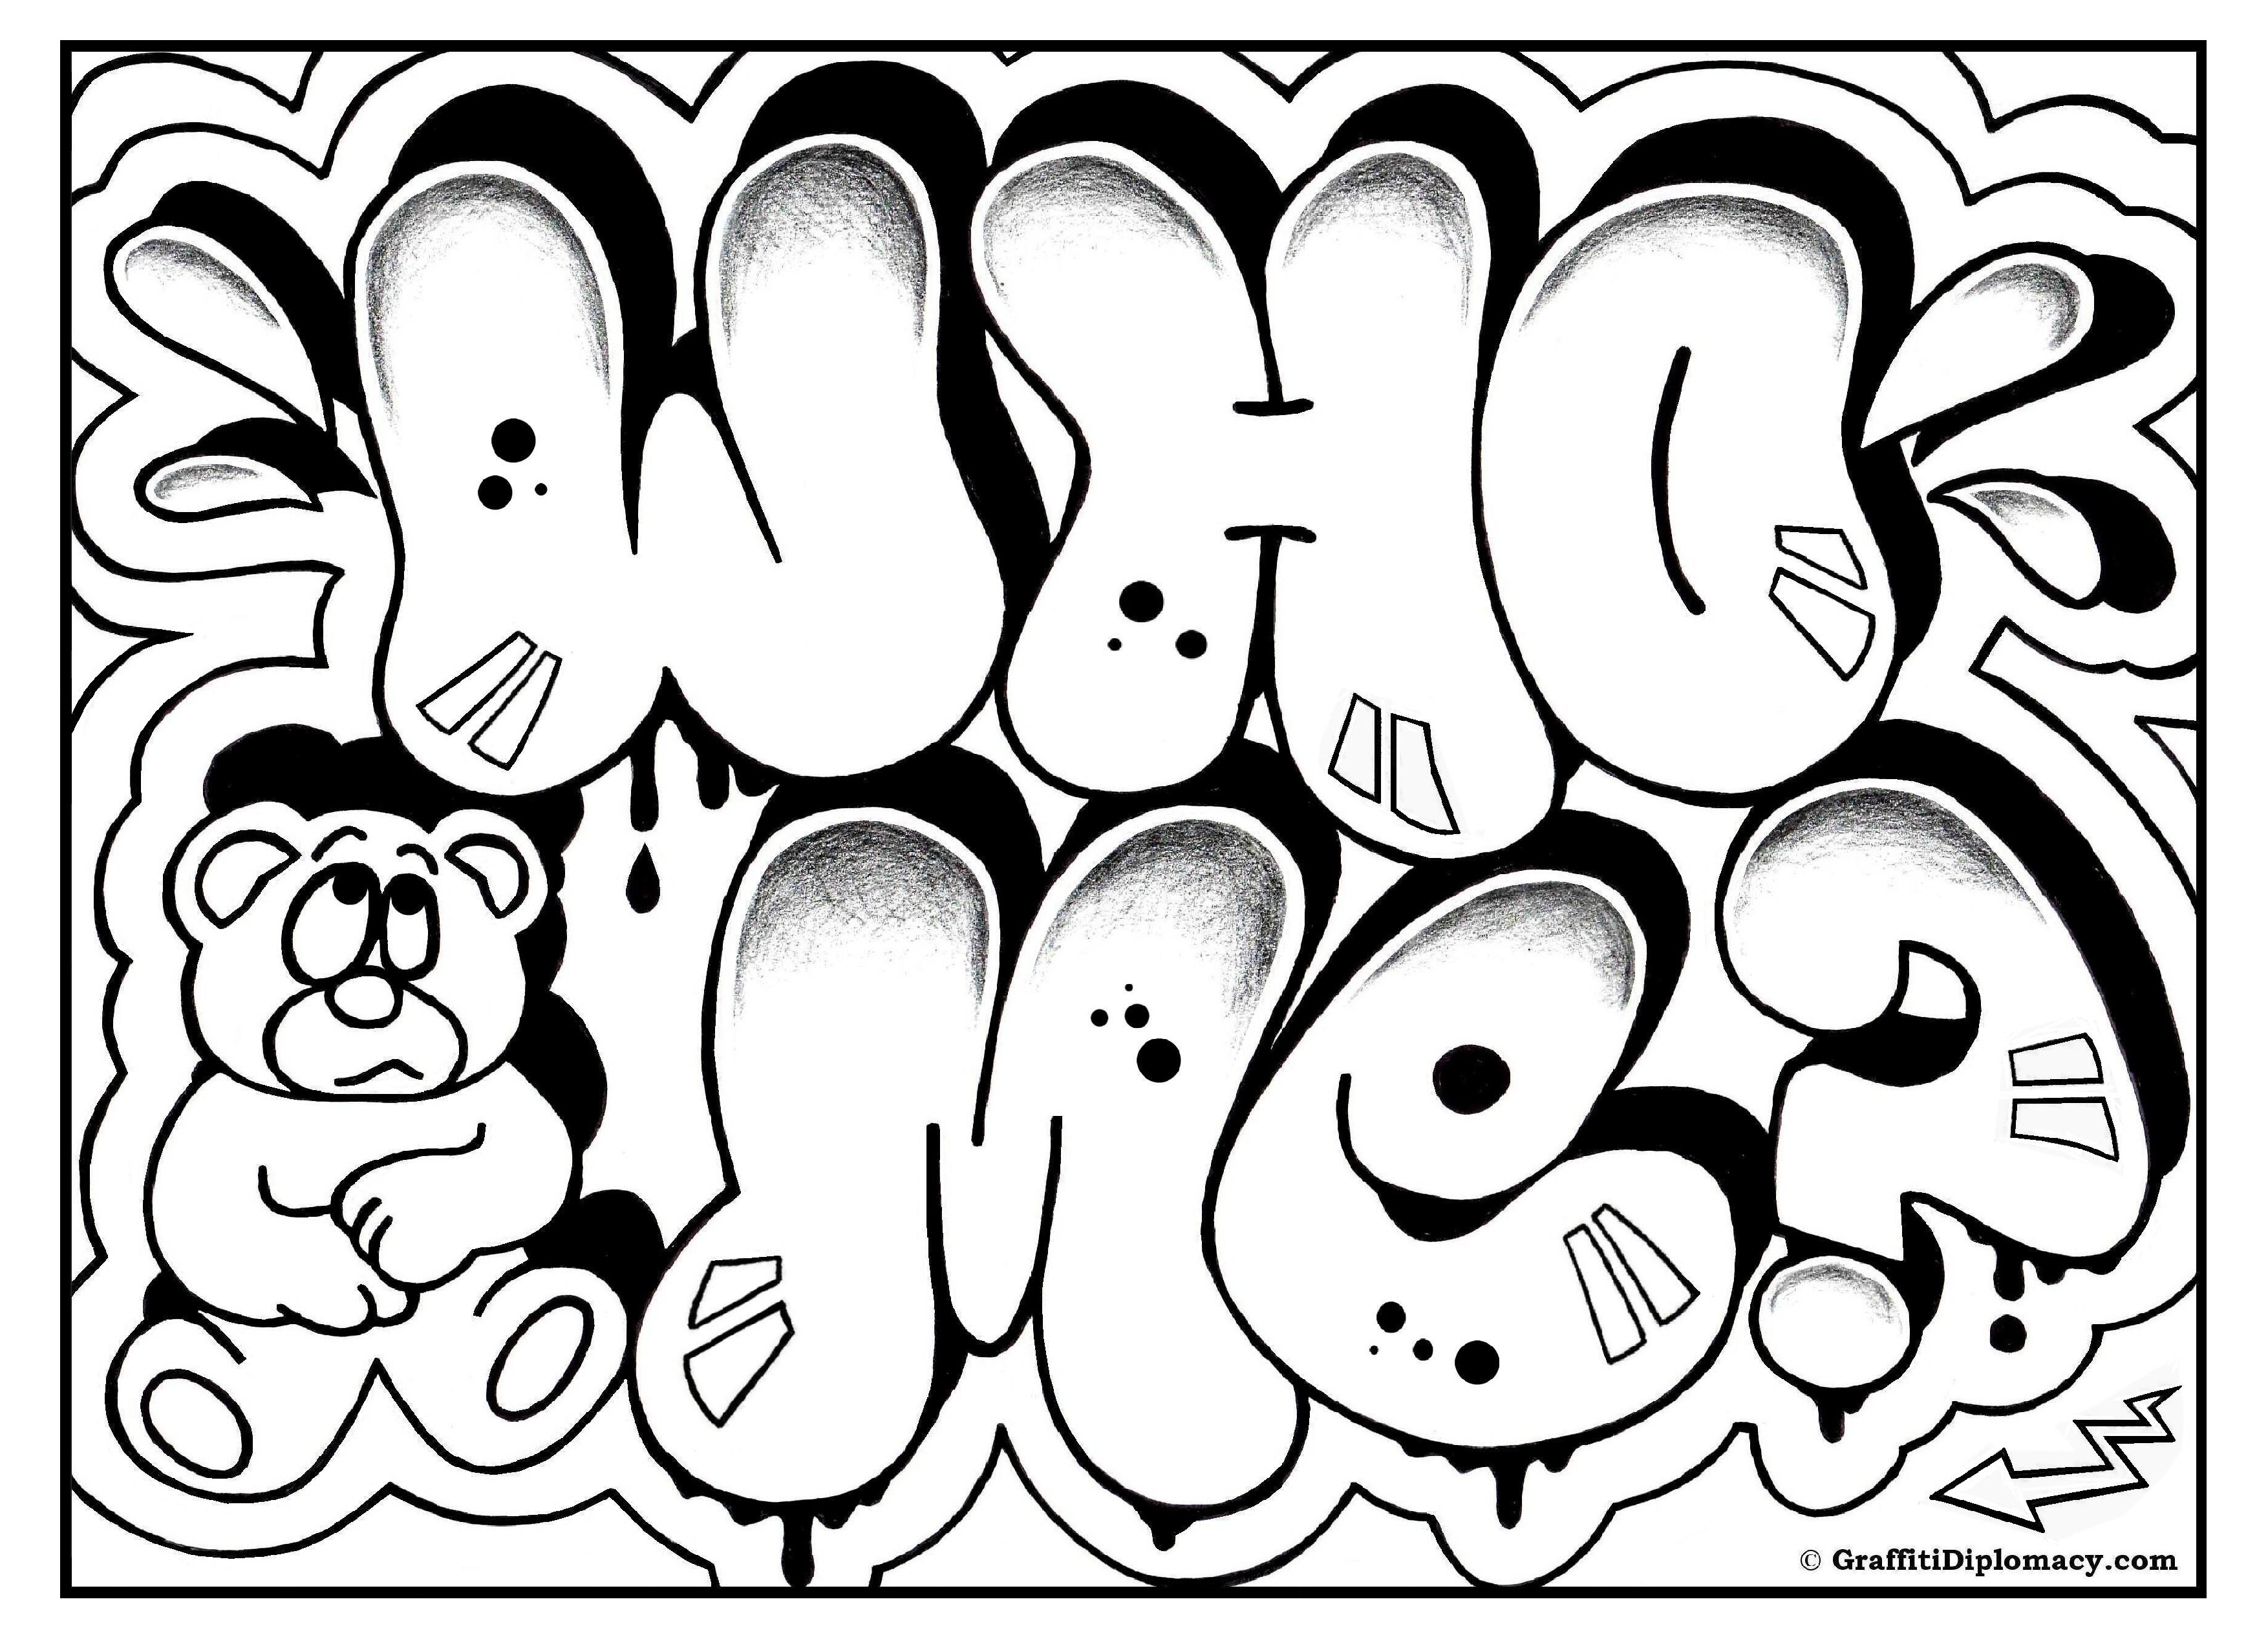 3508x2552 Omg Another Graffiti Coloring Book Of Room Signs Learn To Draw